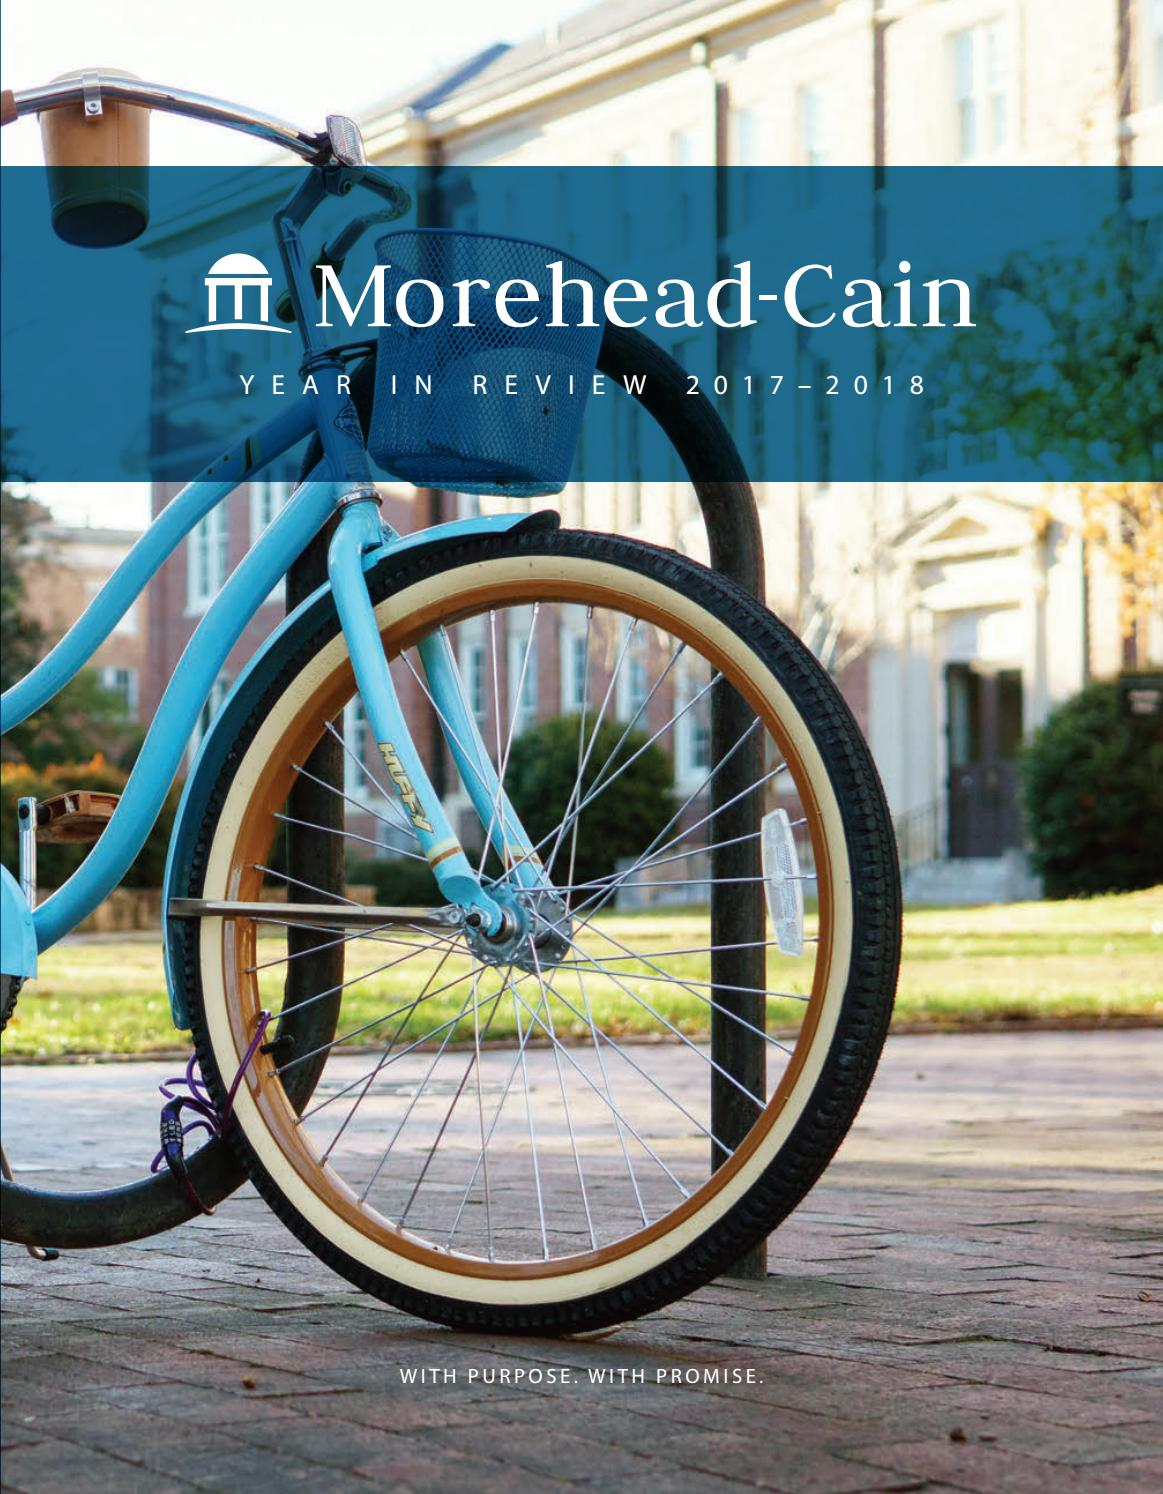 2017–2018 Year in Review by moreheadcain - issuu